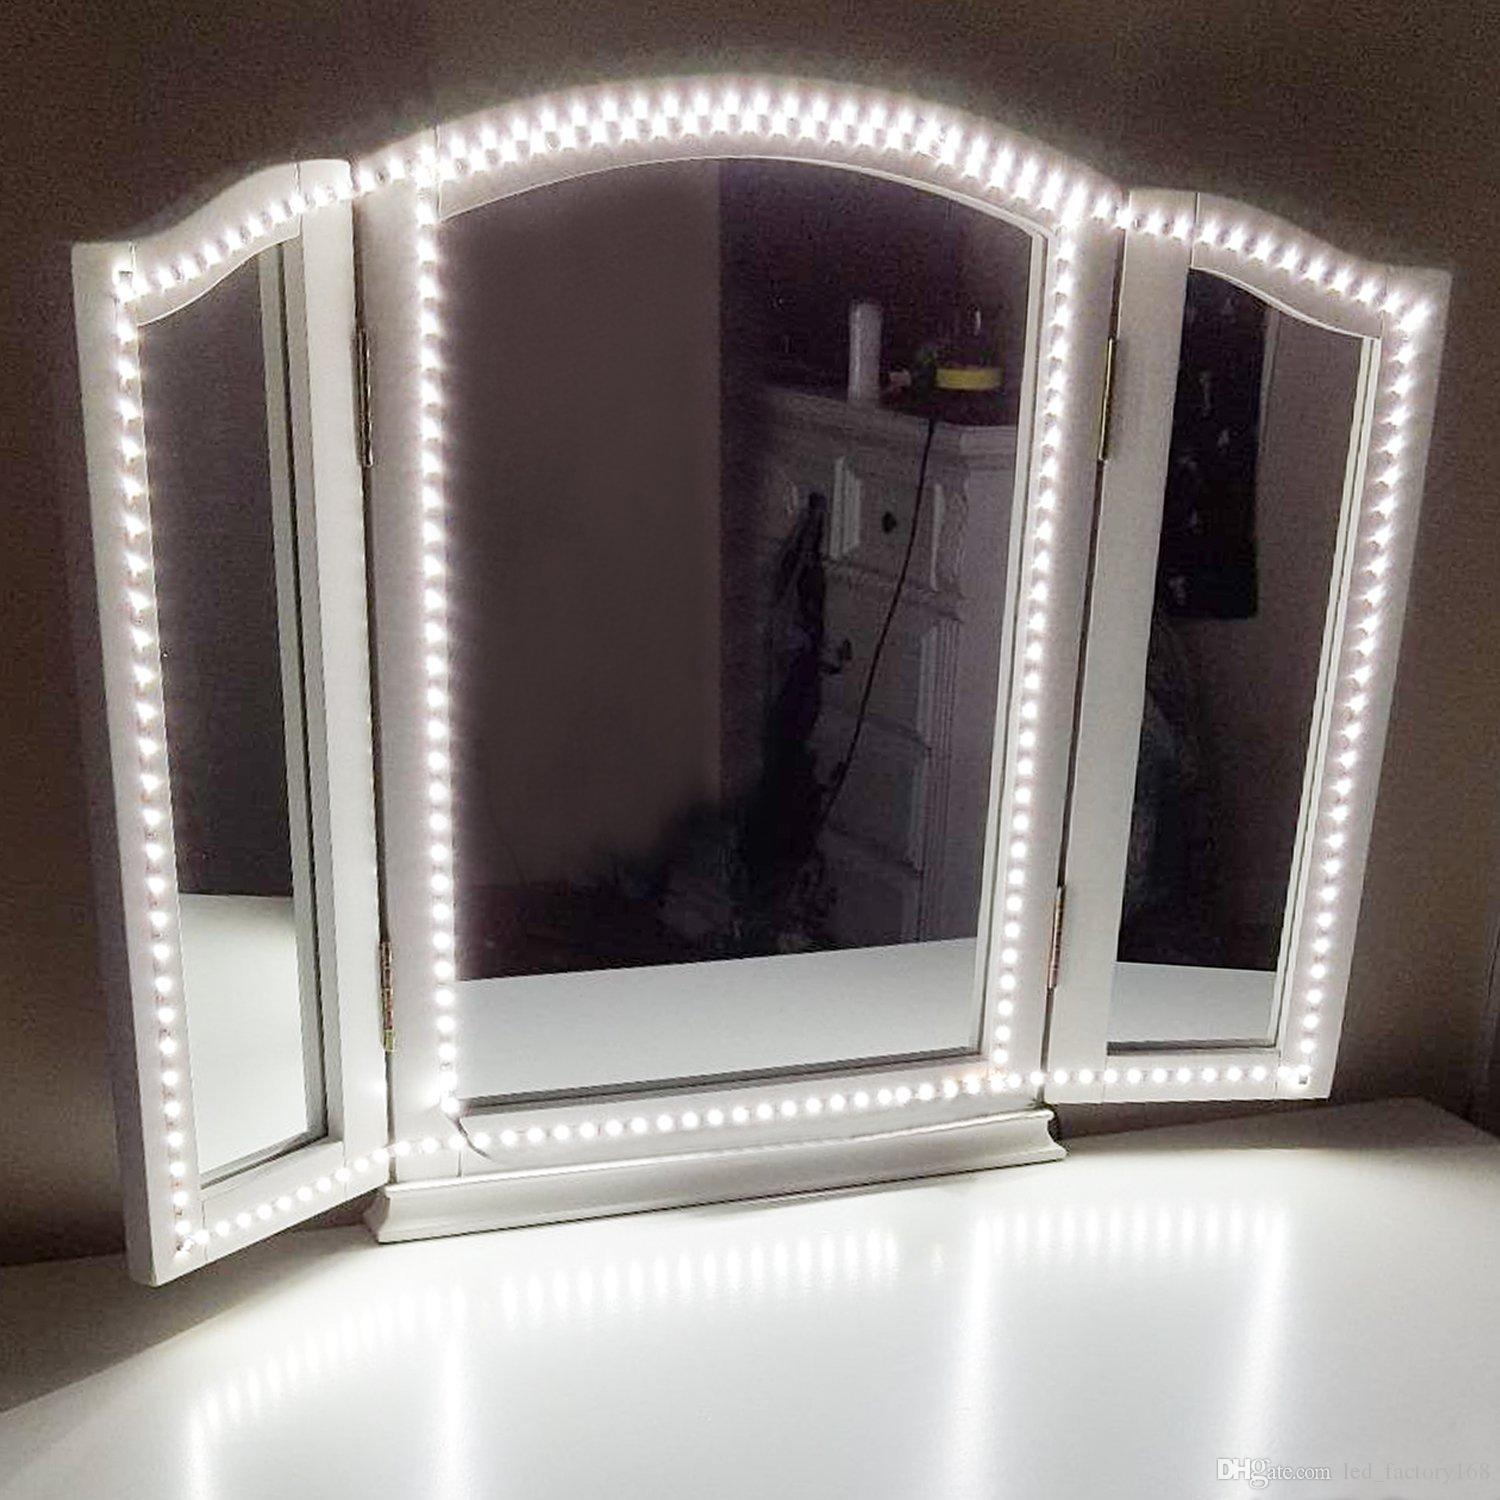 2018 Led Vanity Mirror Lights Kit For Makeup Dressing